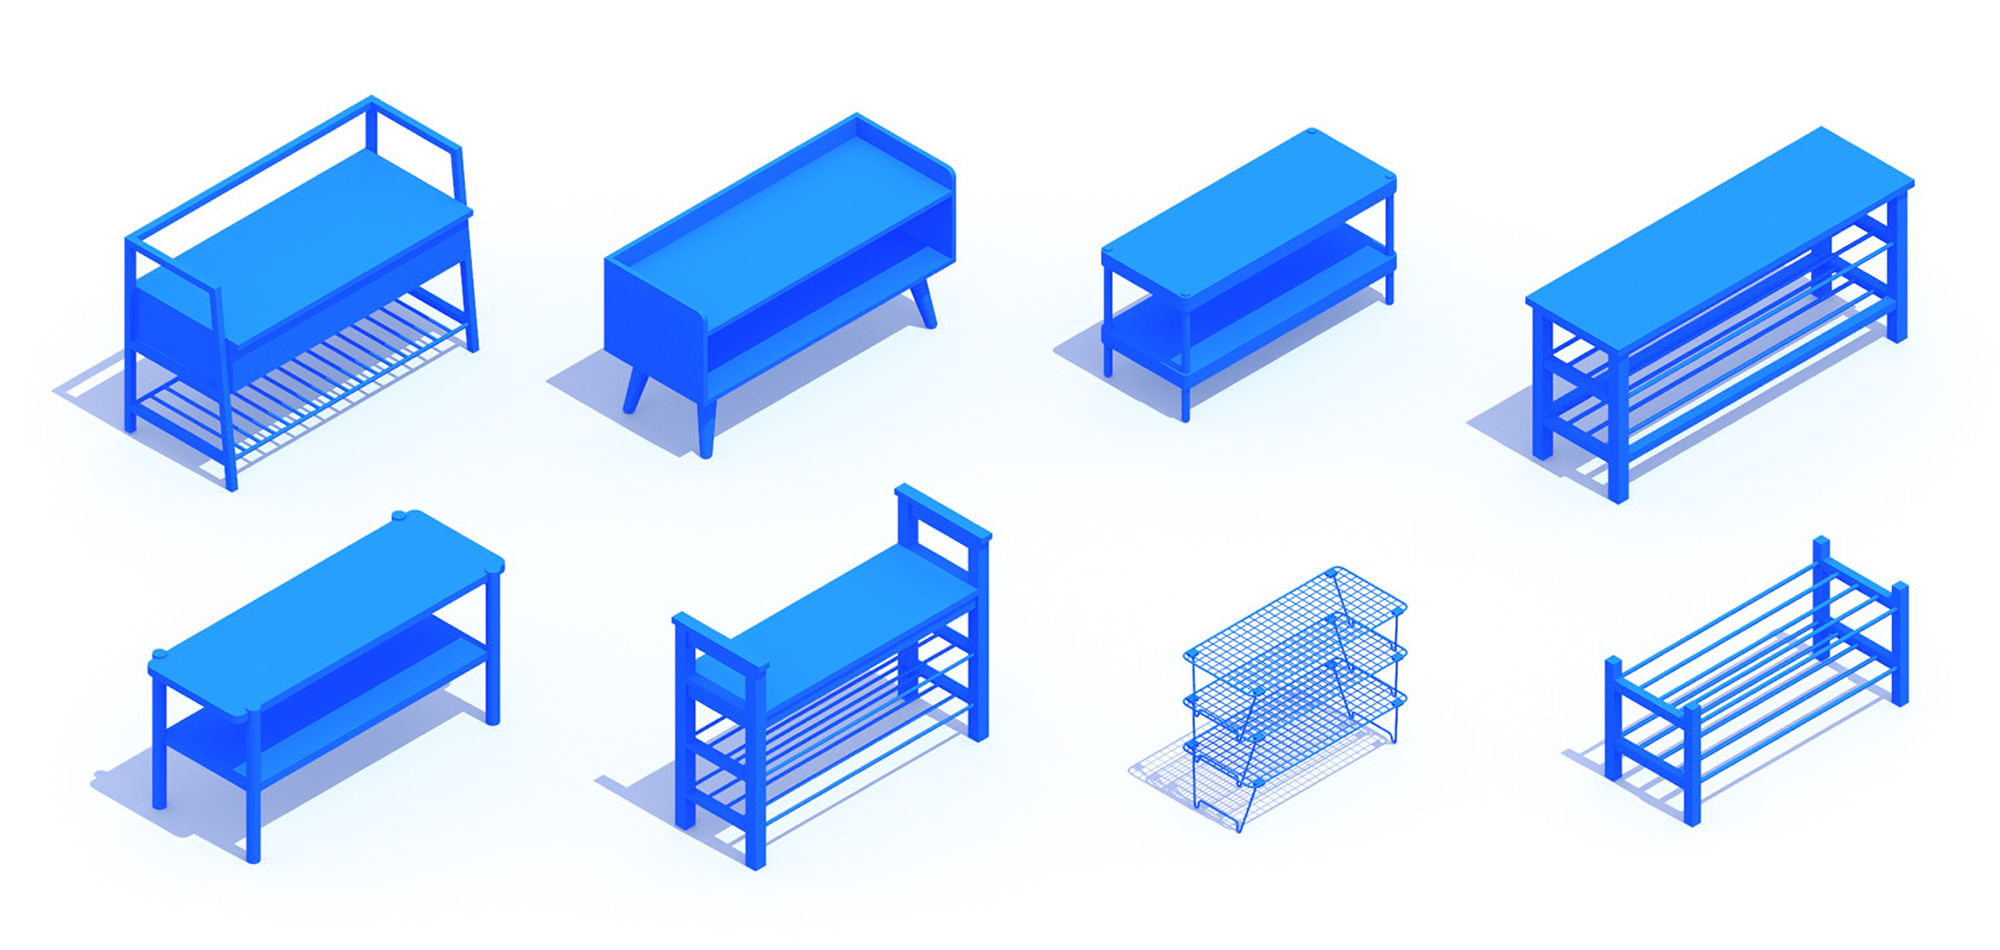 Collection of 3D Shoe Racks (Shoe Storage) showing a diversity of sizes, styles, and types